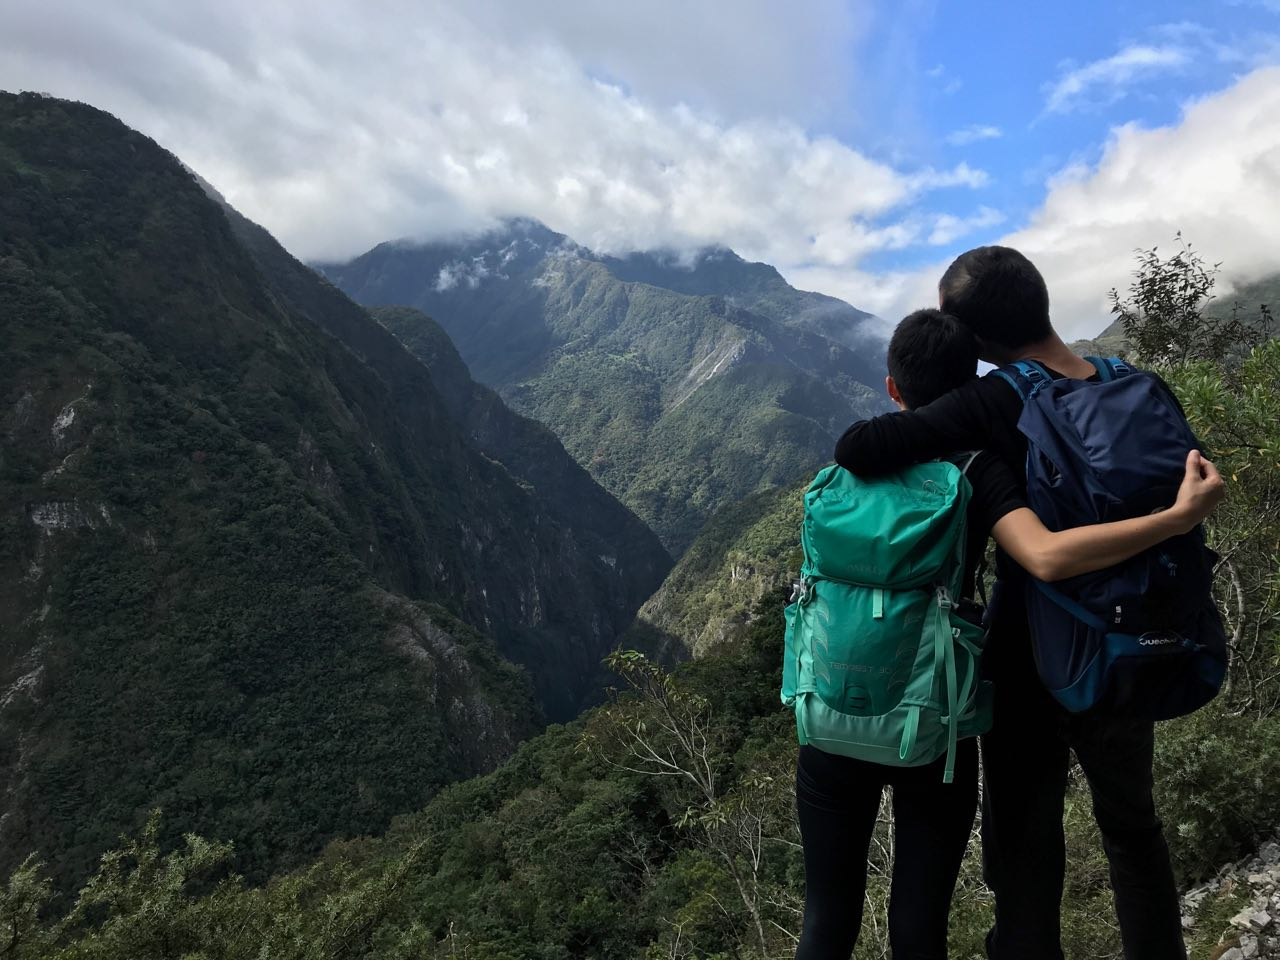 last hikes of 2018 / the breathtaking landscape at the Zhuilu Old Trail in Hualien, Taiwan